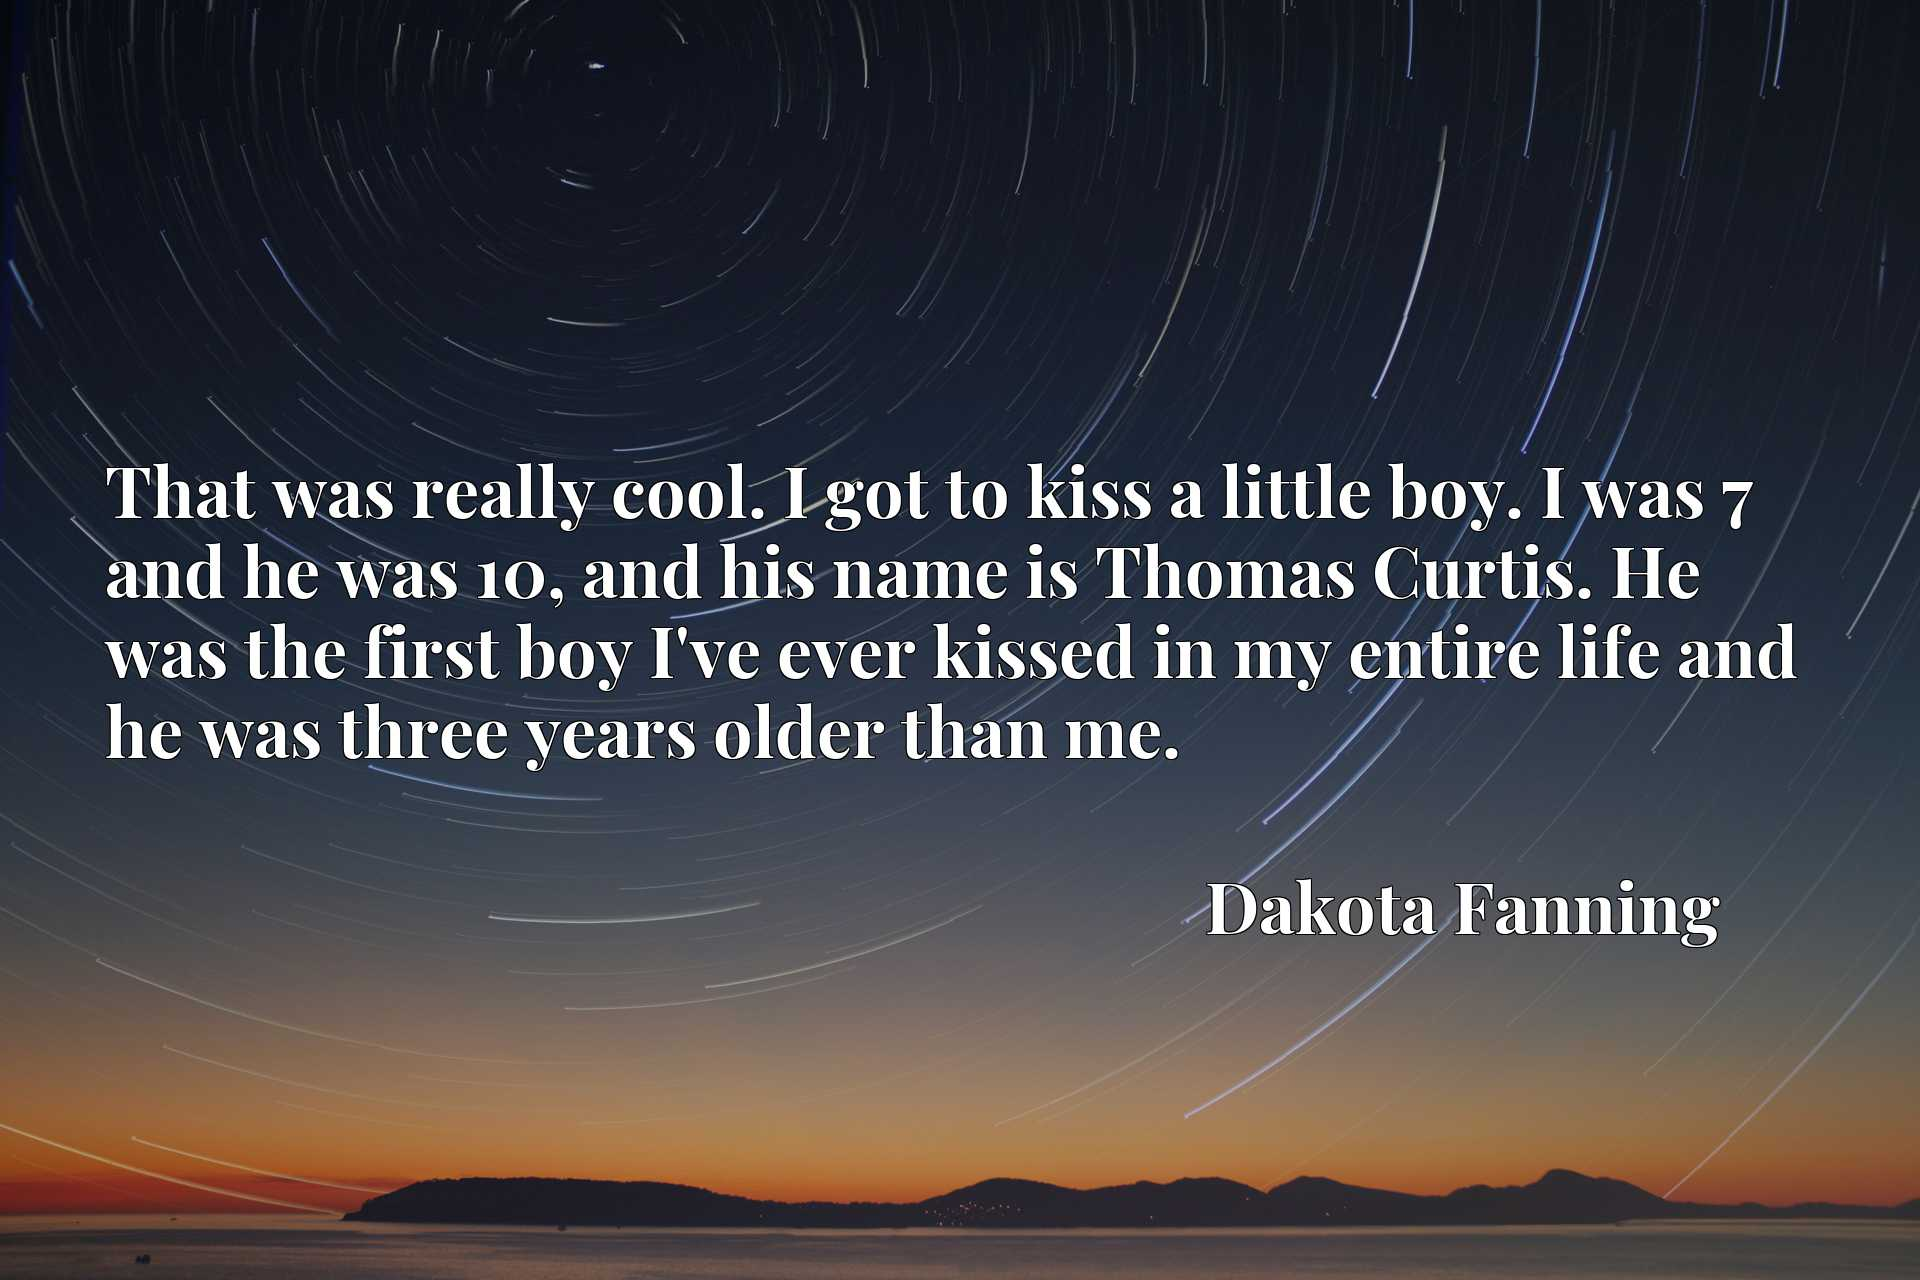 That was really cool. I got to kiss a little boy. I was 7 and he was 10, and his name is Thomas Curtis. He was the first boy I've ever kissed in my entire life and he was three years older than me.